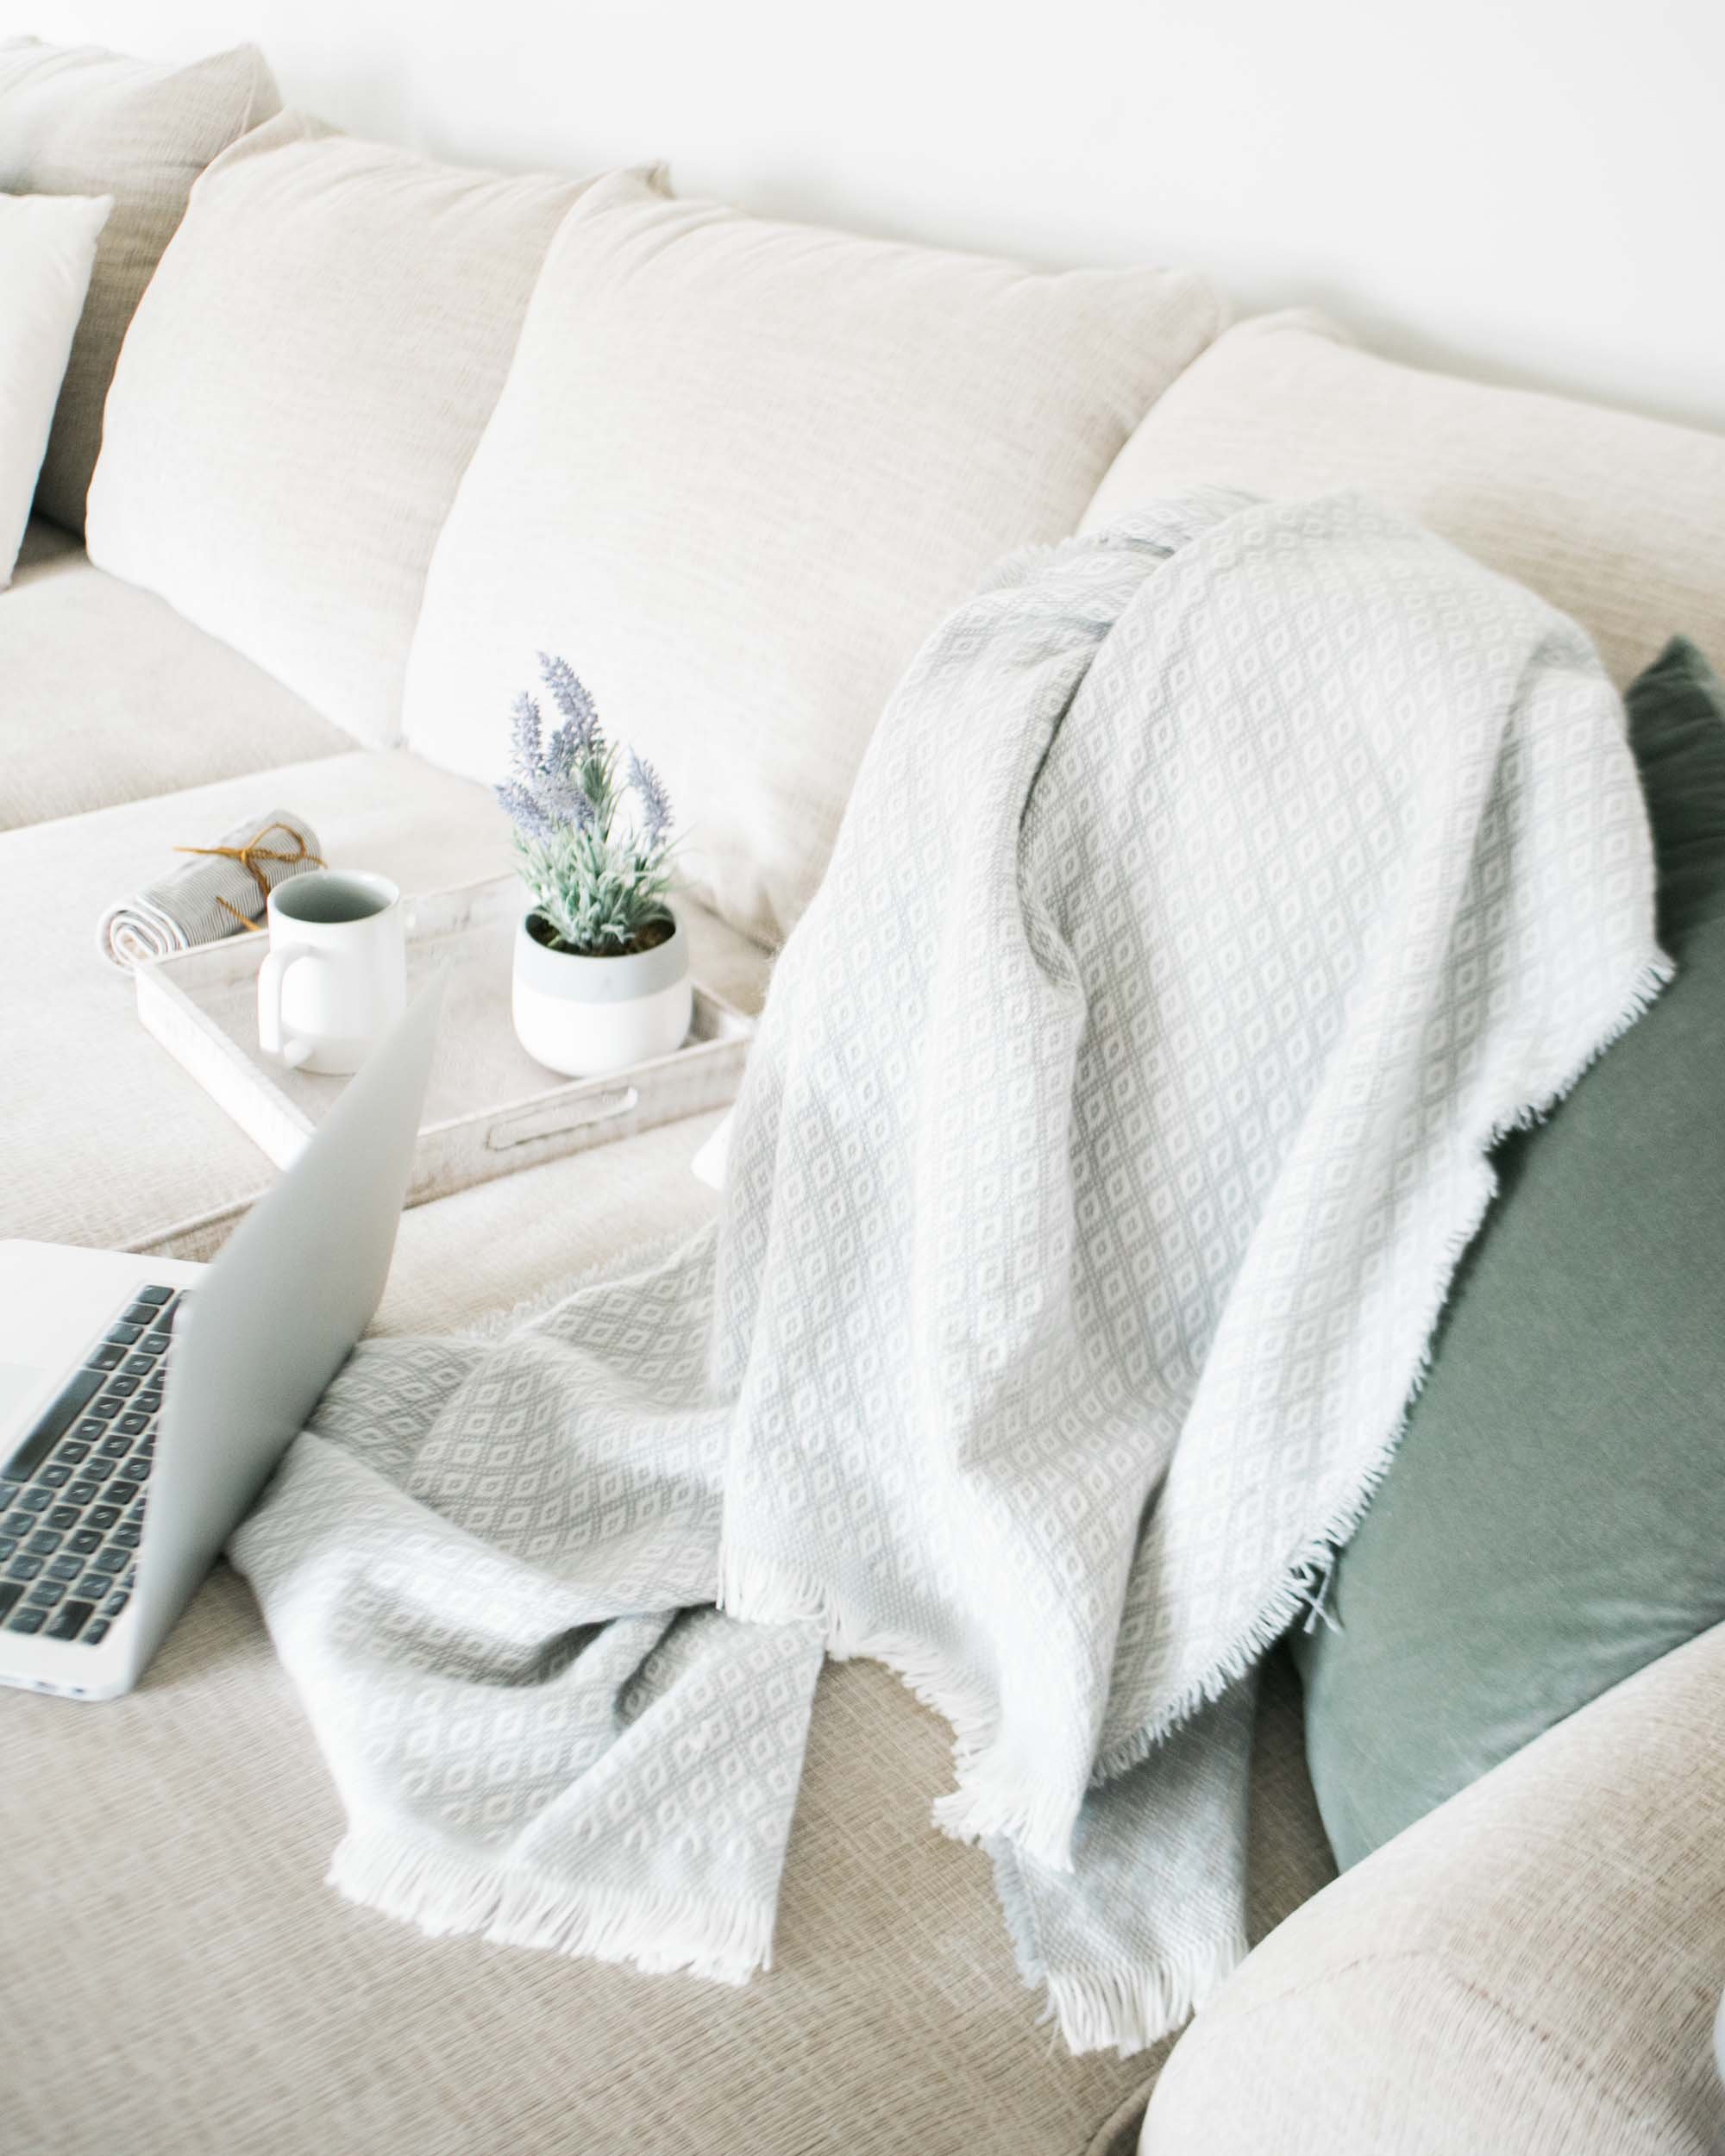 Creating space in your home to truly relax